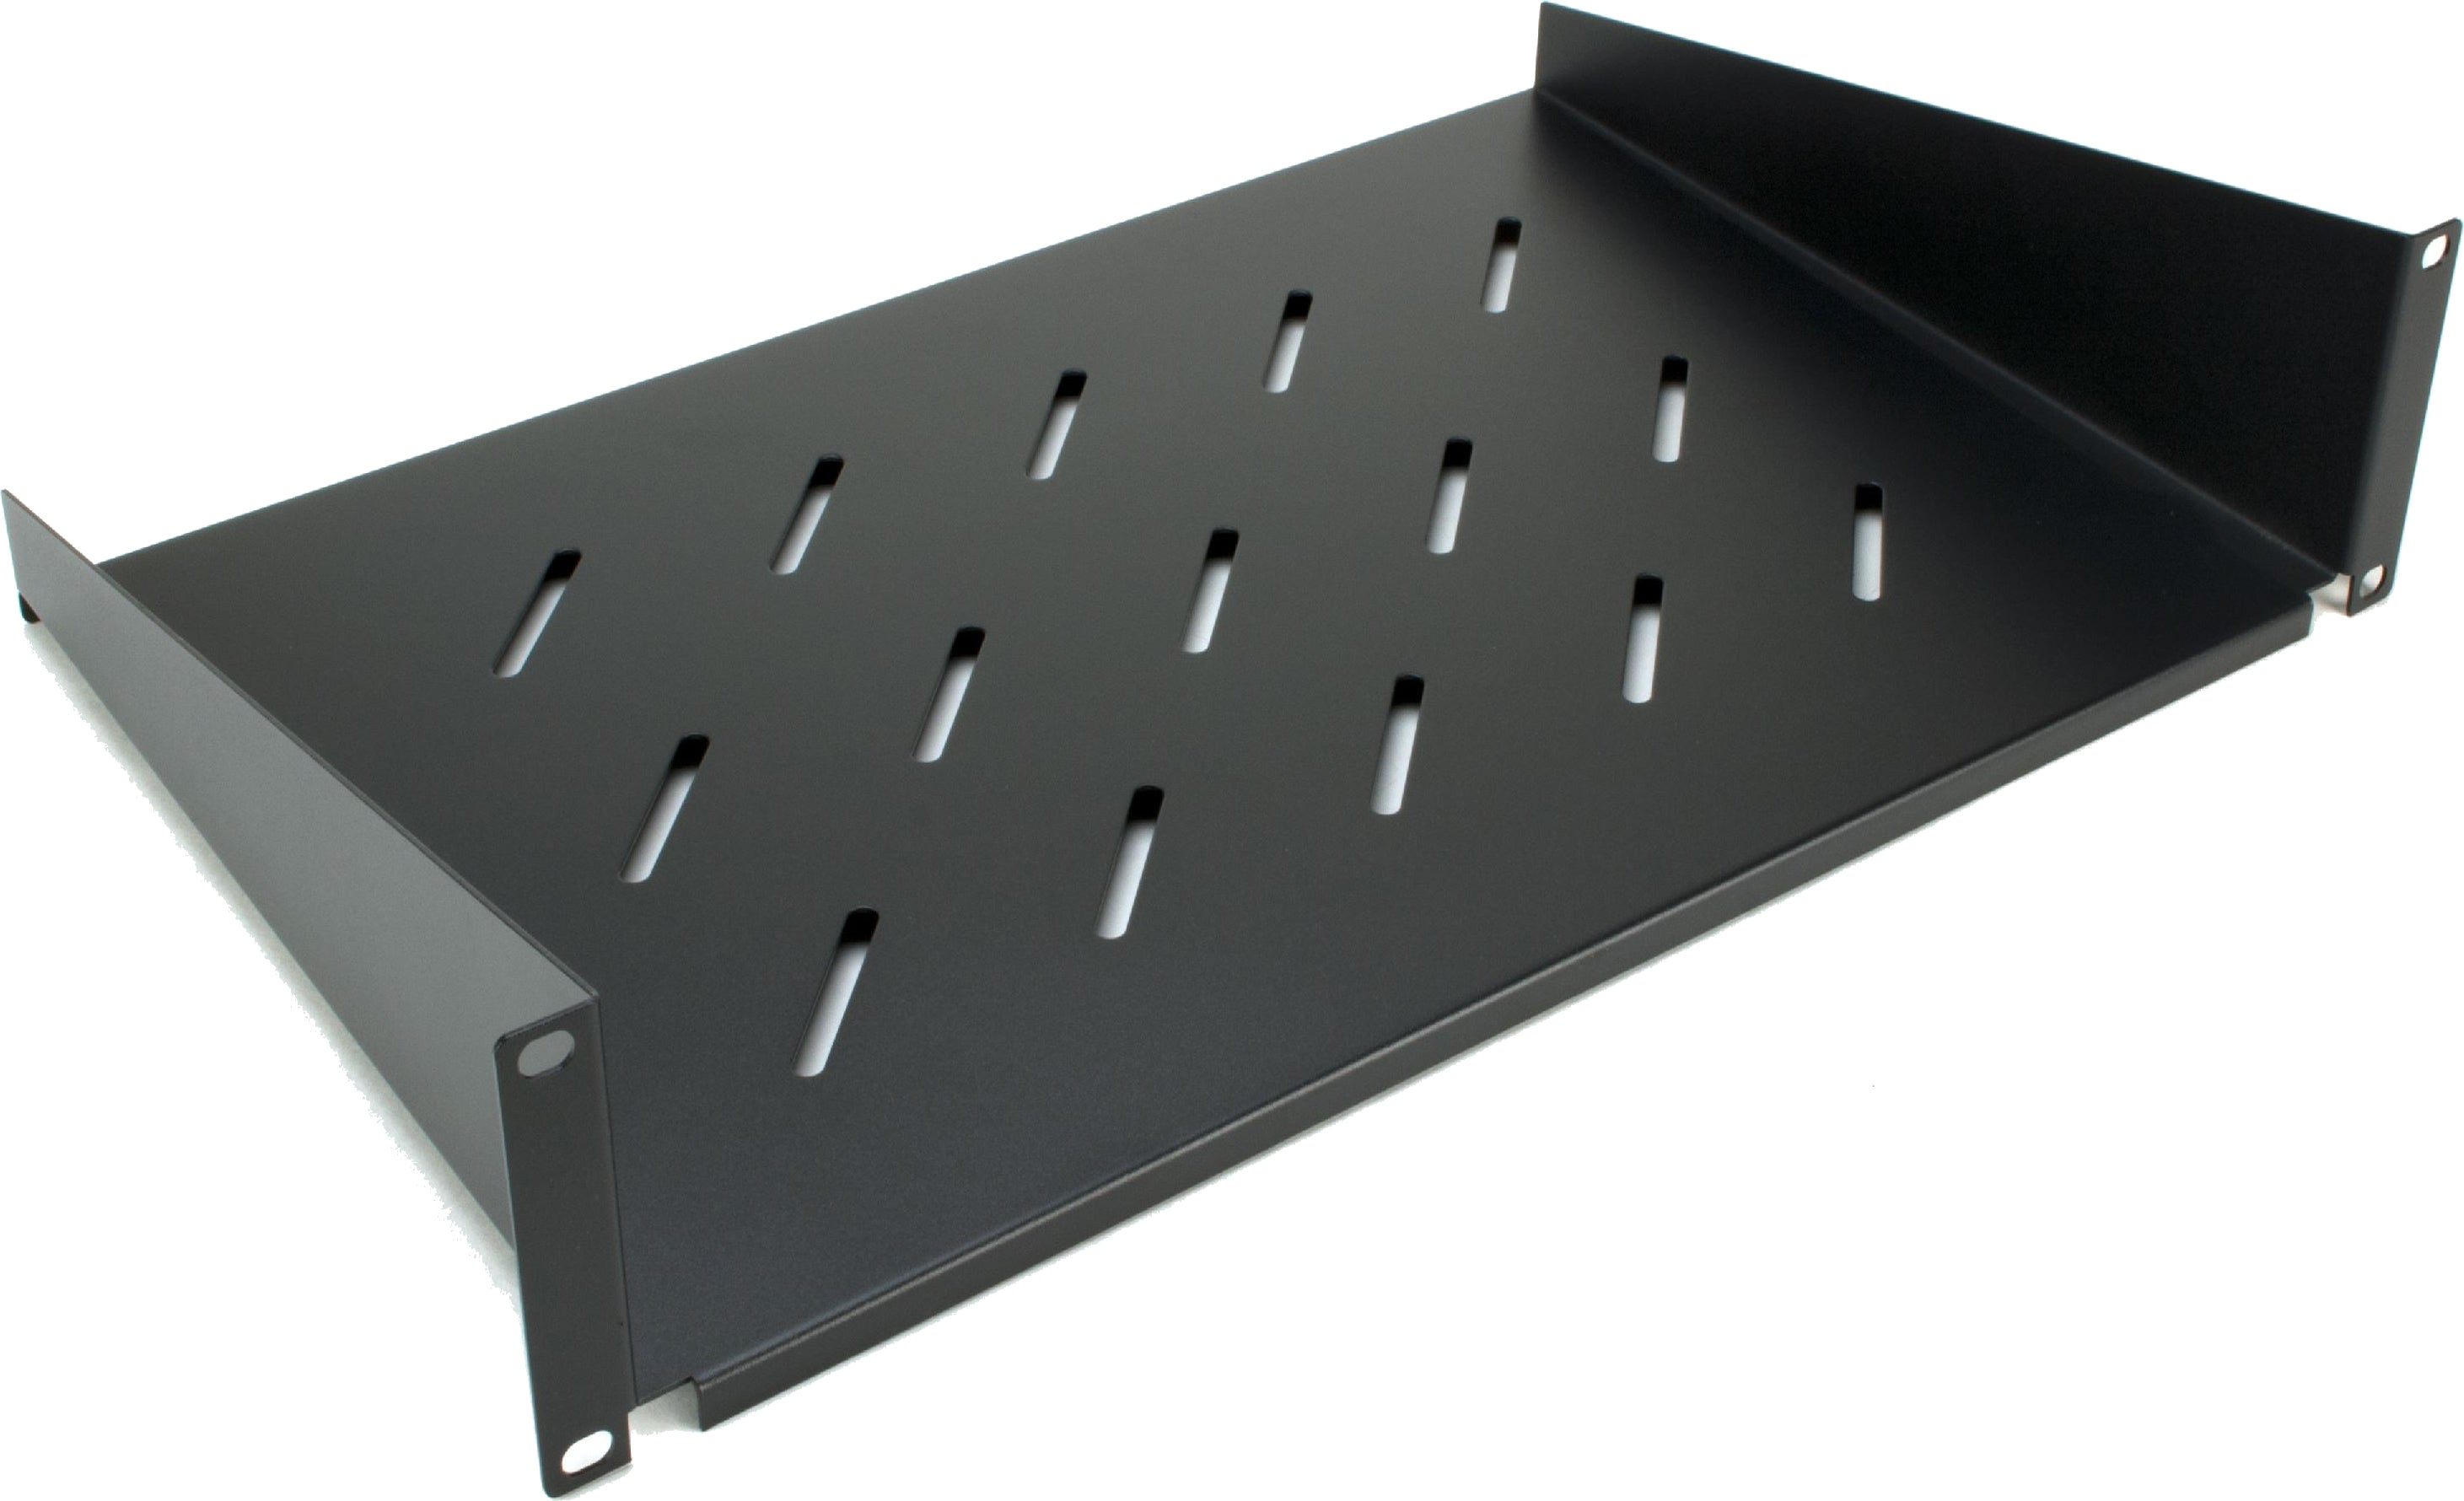 07-6307-35 2U Universal Rack Mount Shelf - 35cm